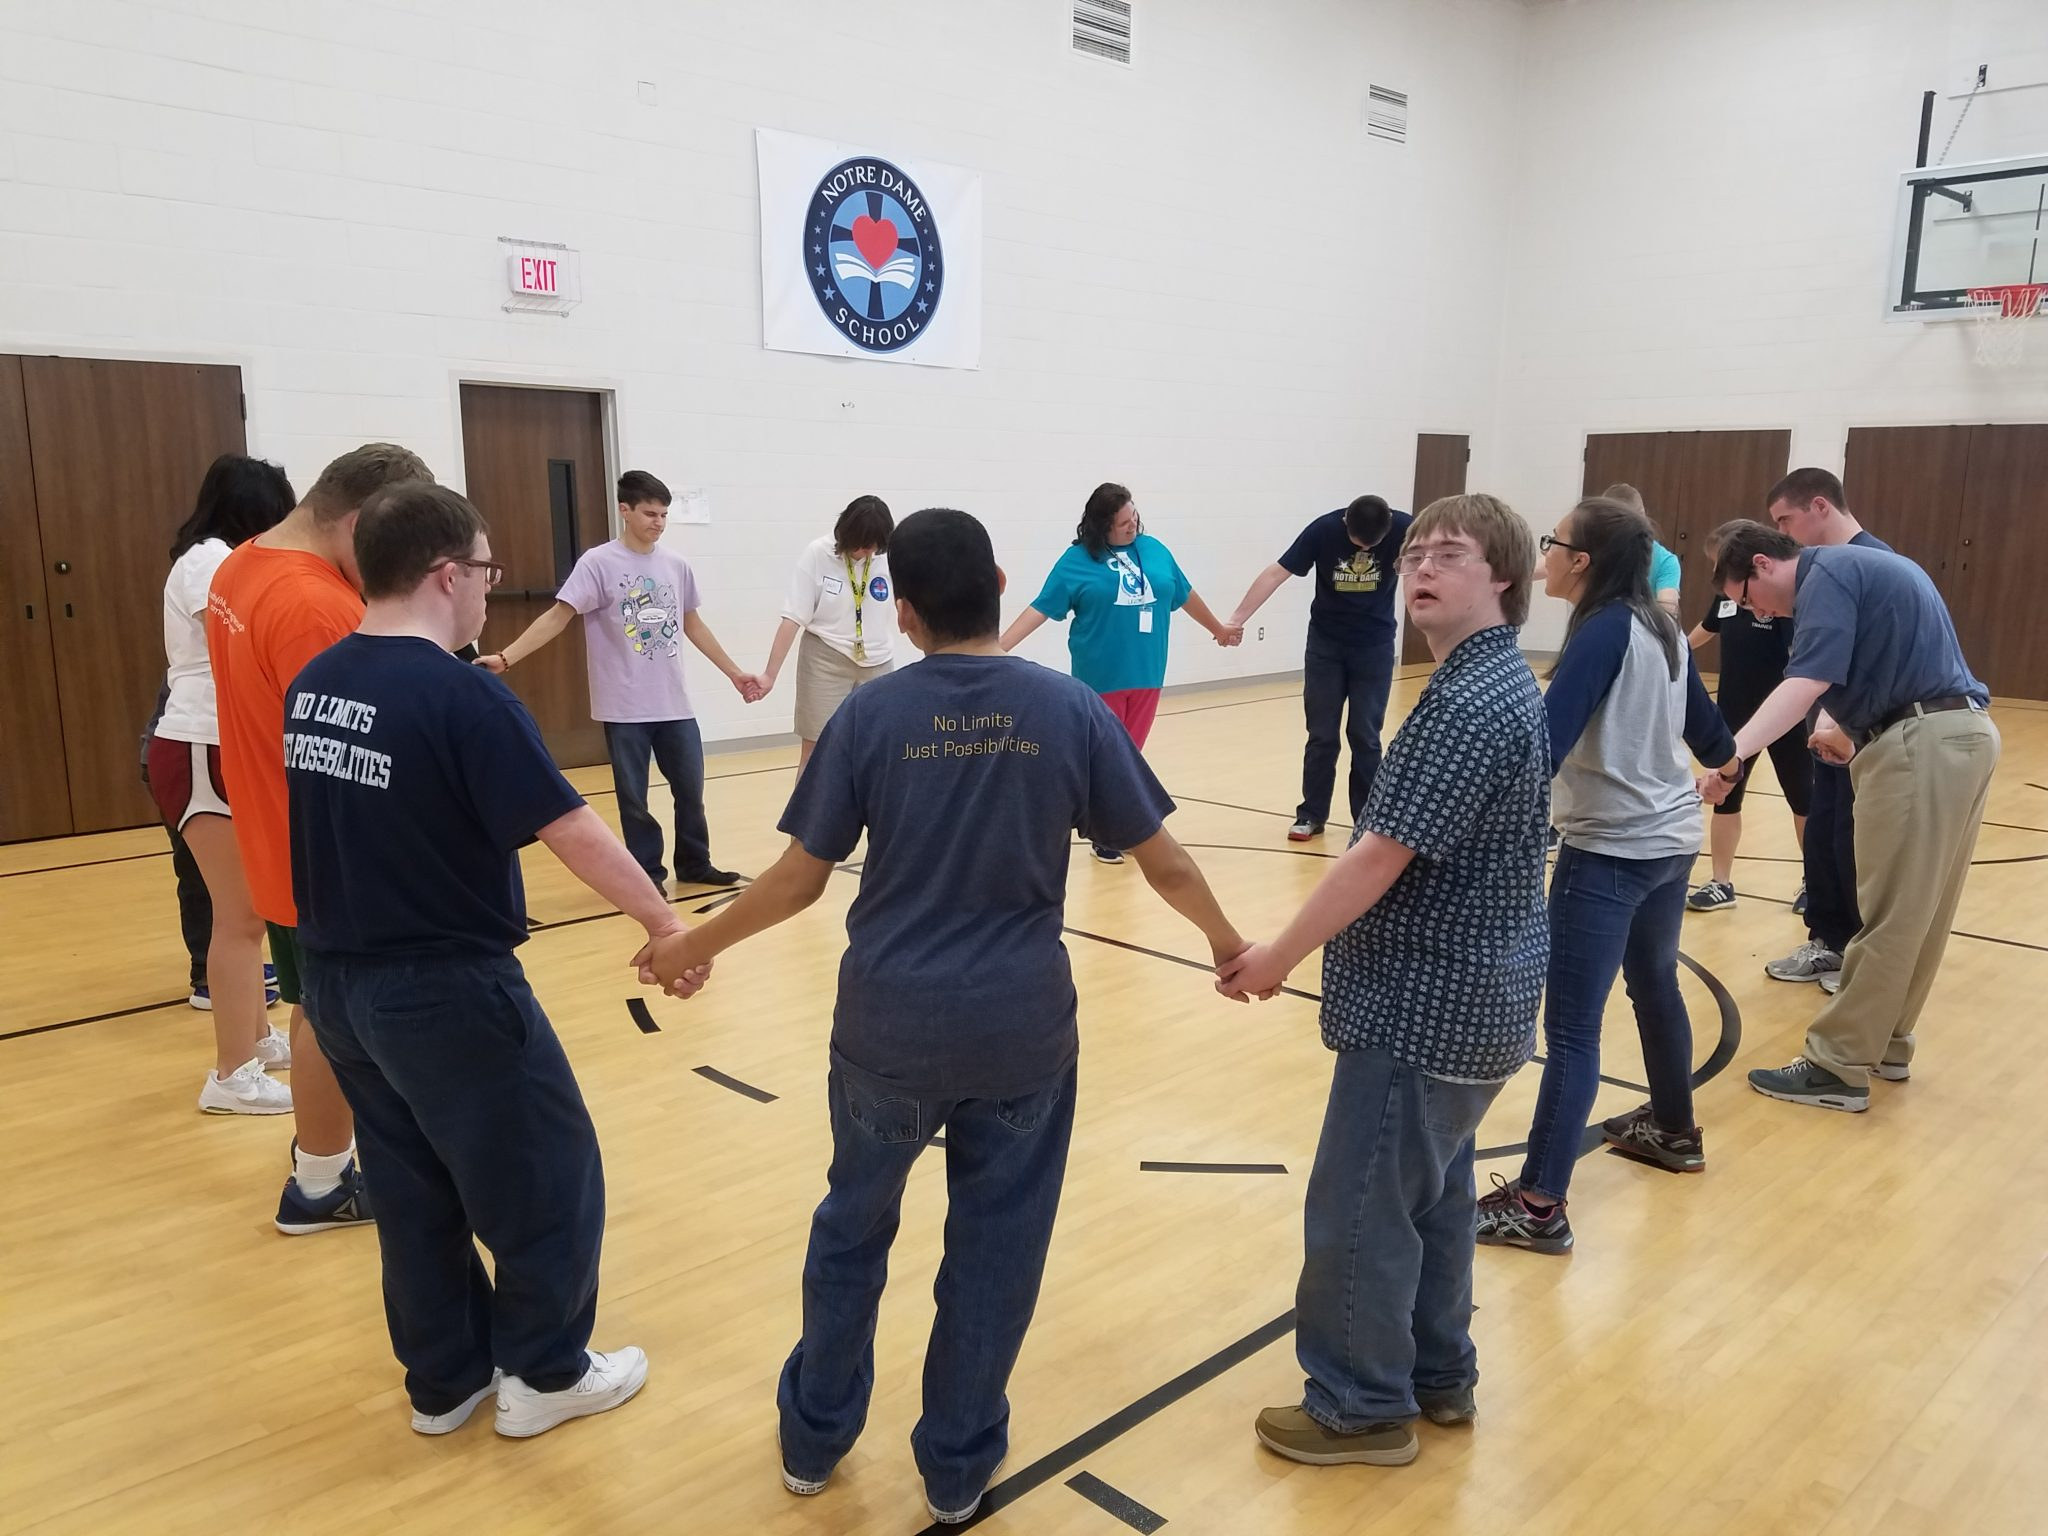 notre-dame-school-prayer-special-needs-down-syndrome-autism-exercise